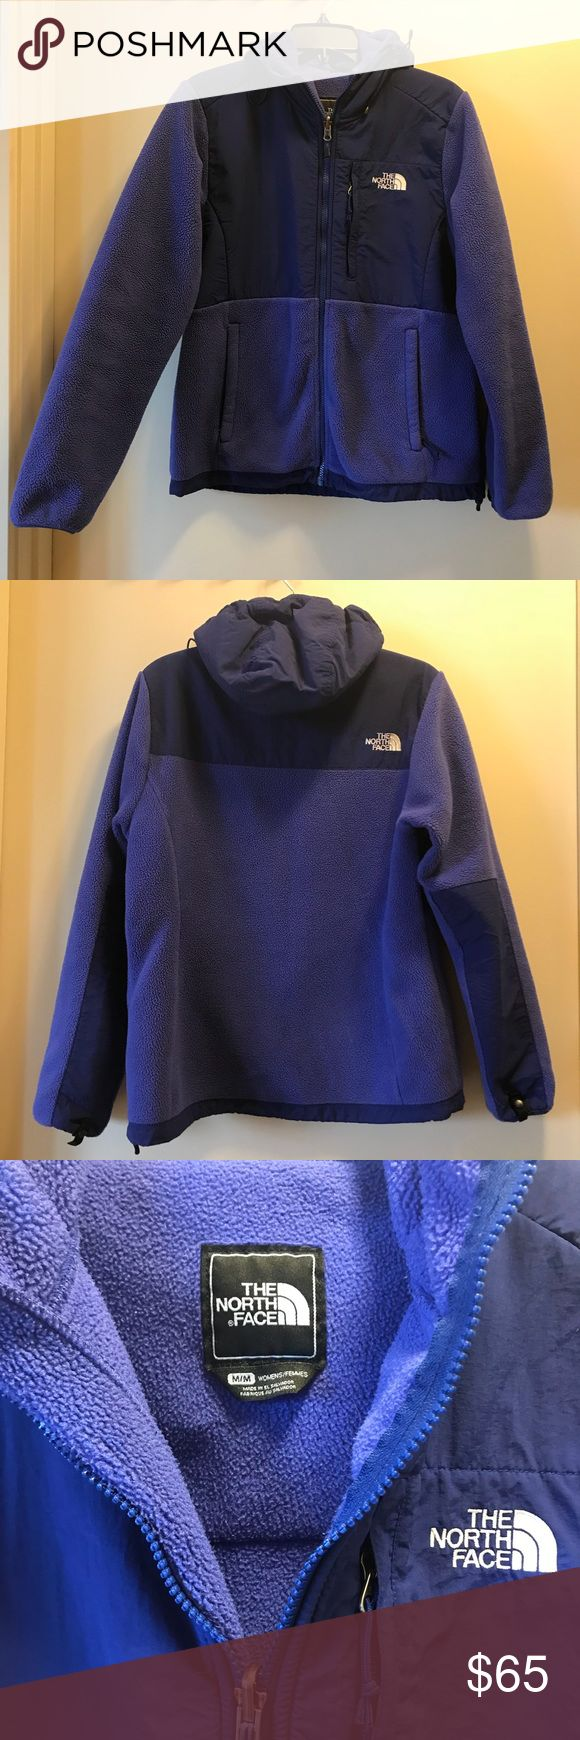 The North Face hooded fleece Women's M Very versatile hooded fleece! Super warm and perfect for layering. (Matches perfect with out Patagonia raincoat listing)  Color is bluish purple.  Water resistant hood and shoulders. The North Face Jackets & Coats #RaincoatsForWomenTheNorthFace